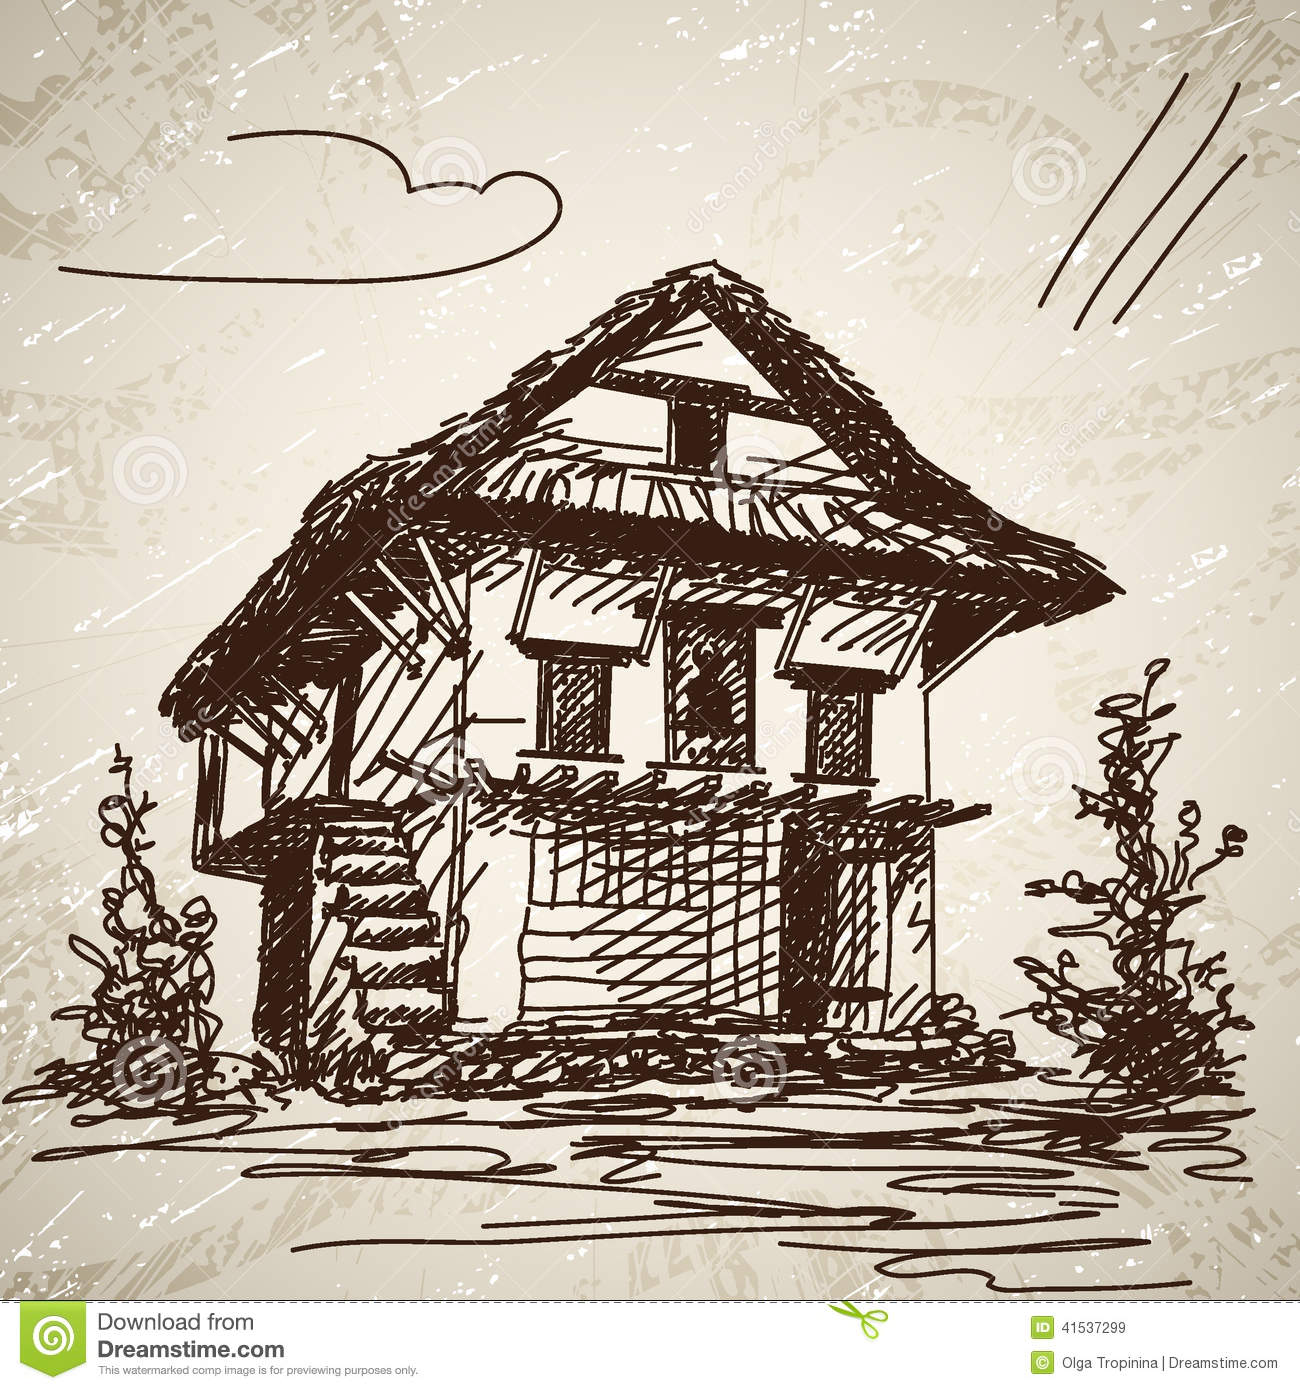 Traditional house clipart vector library Nepali Traditional House Stock Photo - Image: 54968961 vector library